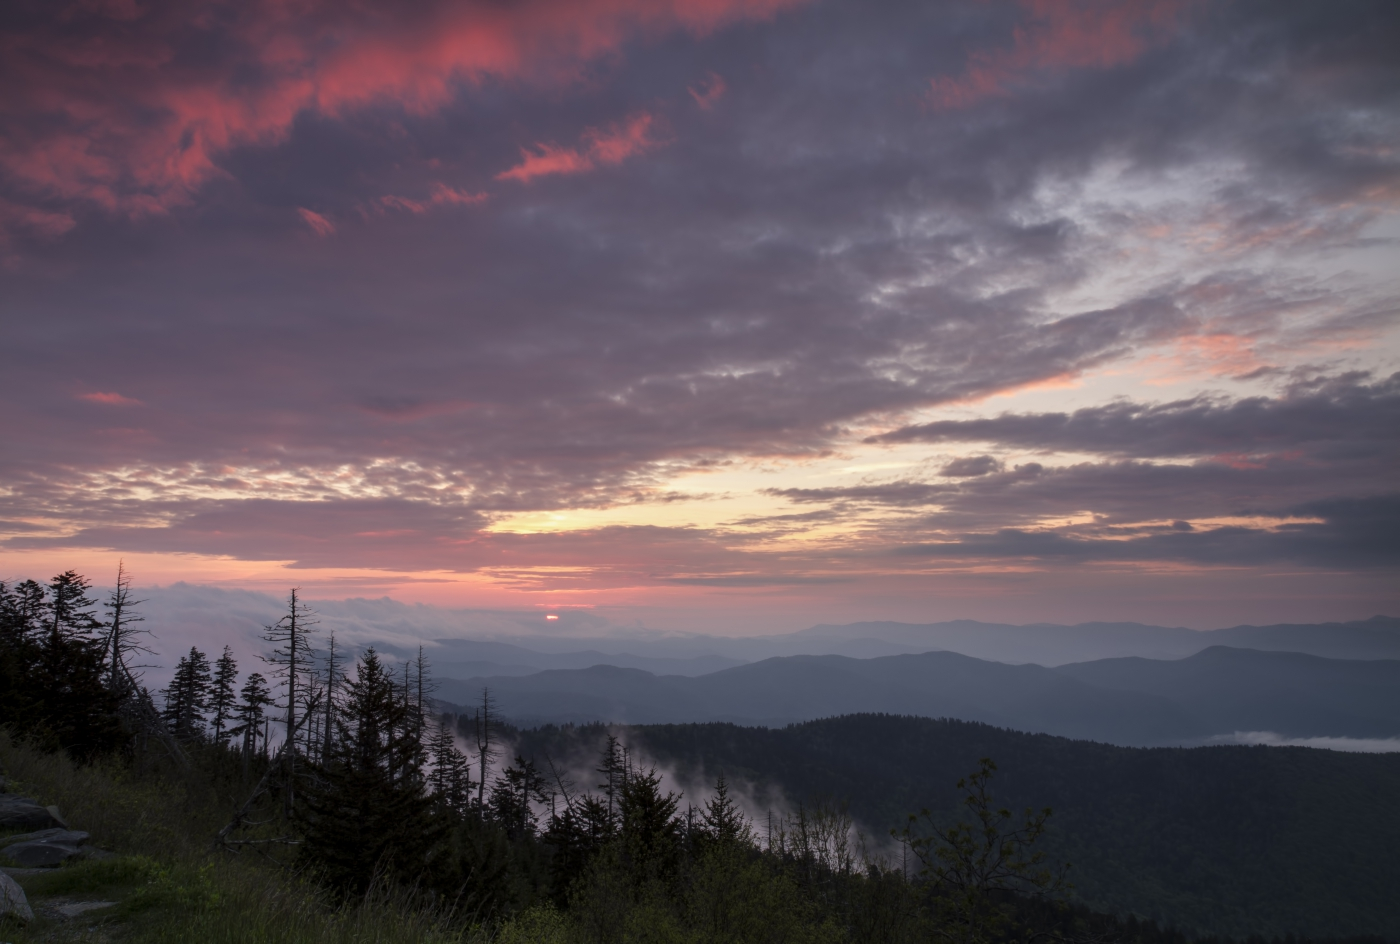 A ride through North Carolina's mountains can feature breathtaking sunrises and sunsets.